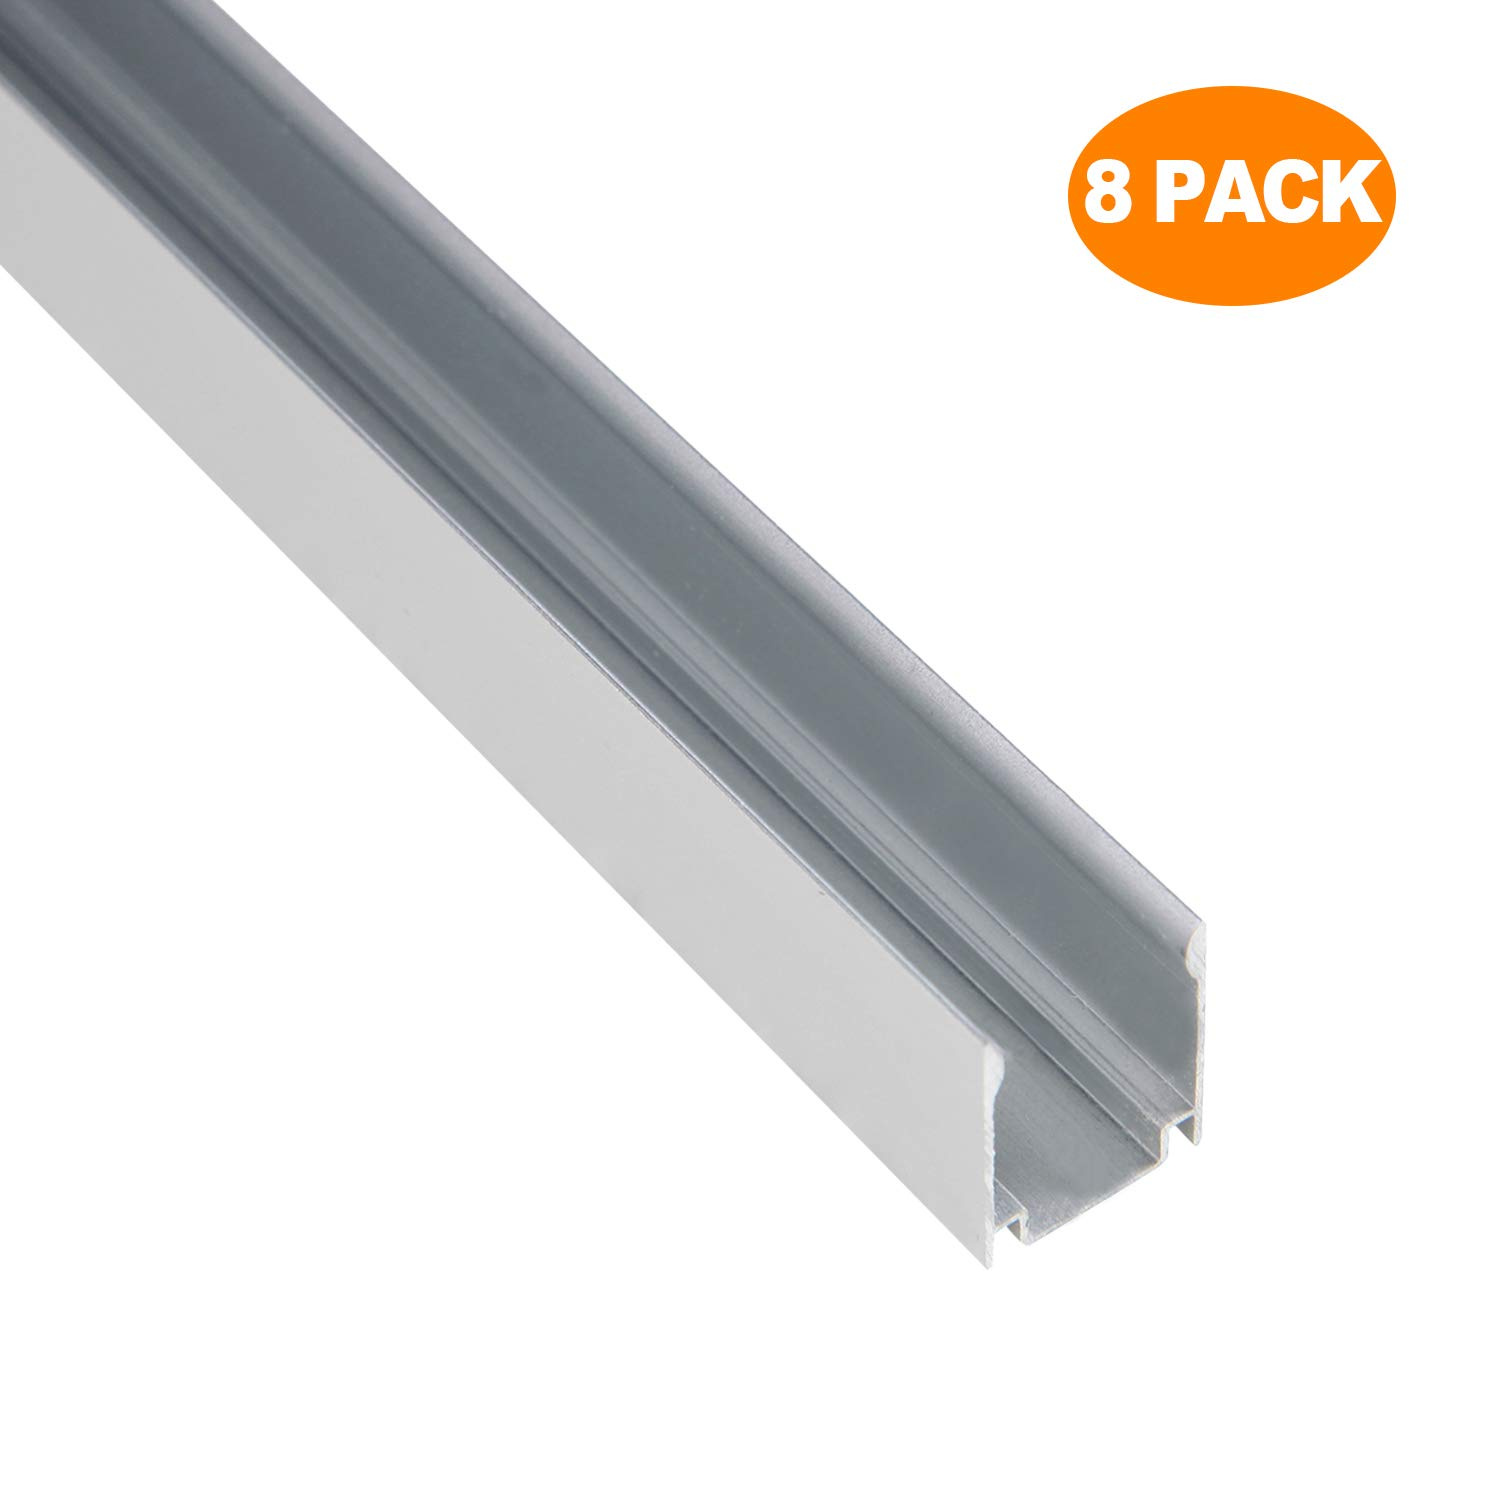 Shine Decor 3.3FT/1M Aluminum Track, Pack of 8 12.5x23mm and 15x25mm LED Neon Rope Lights